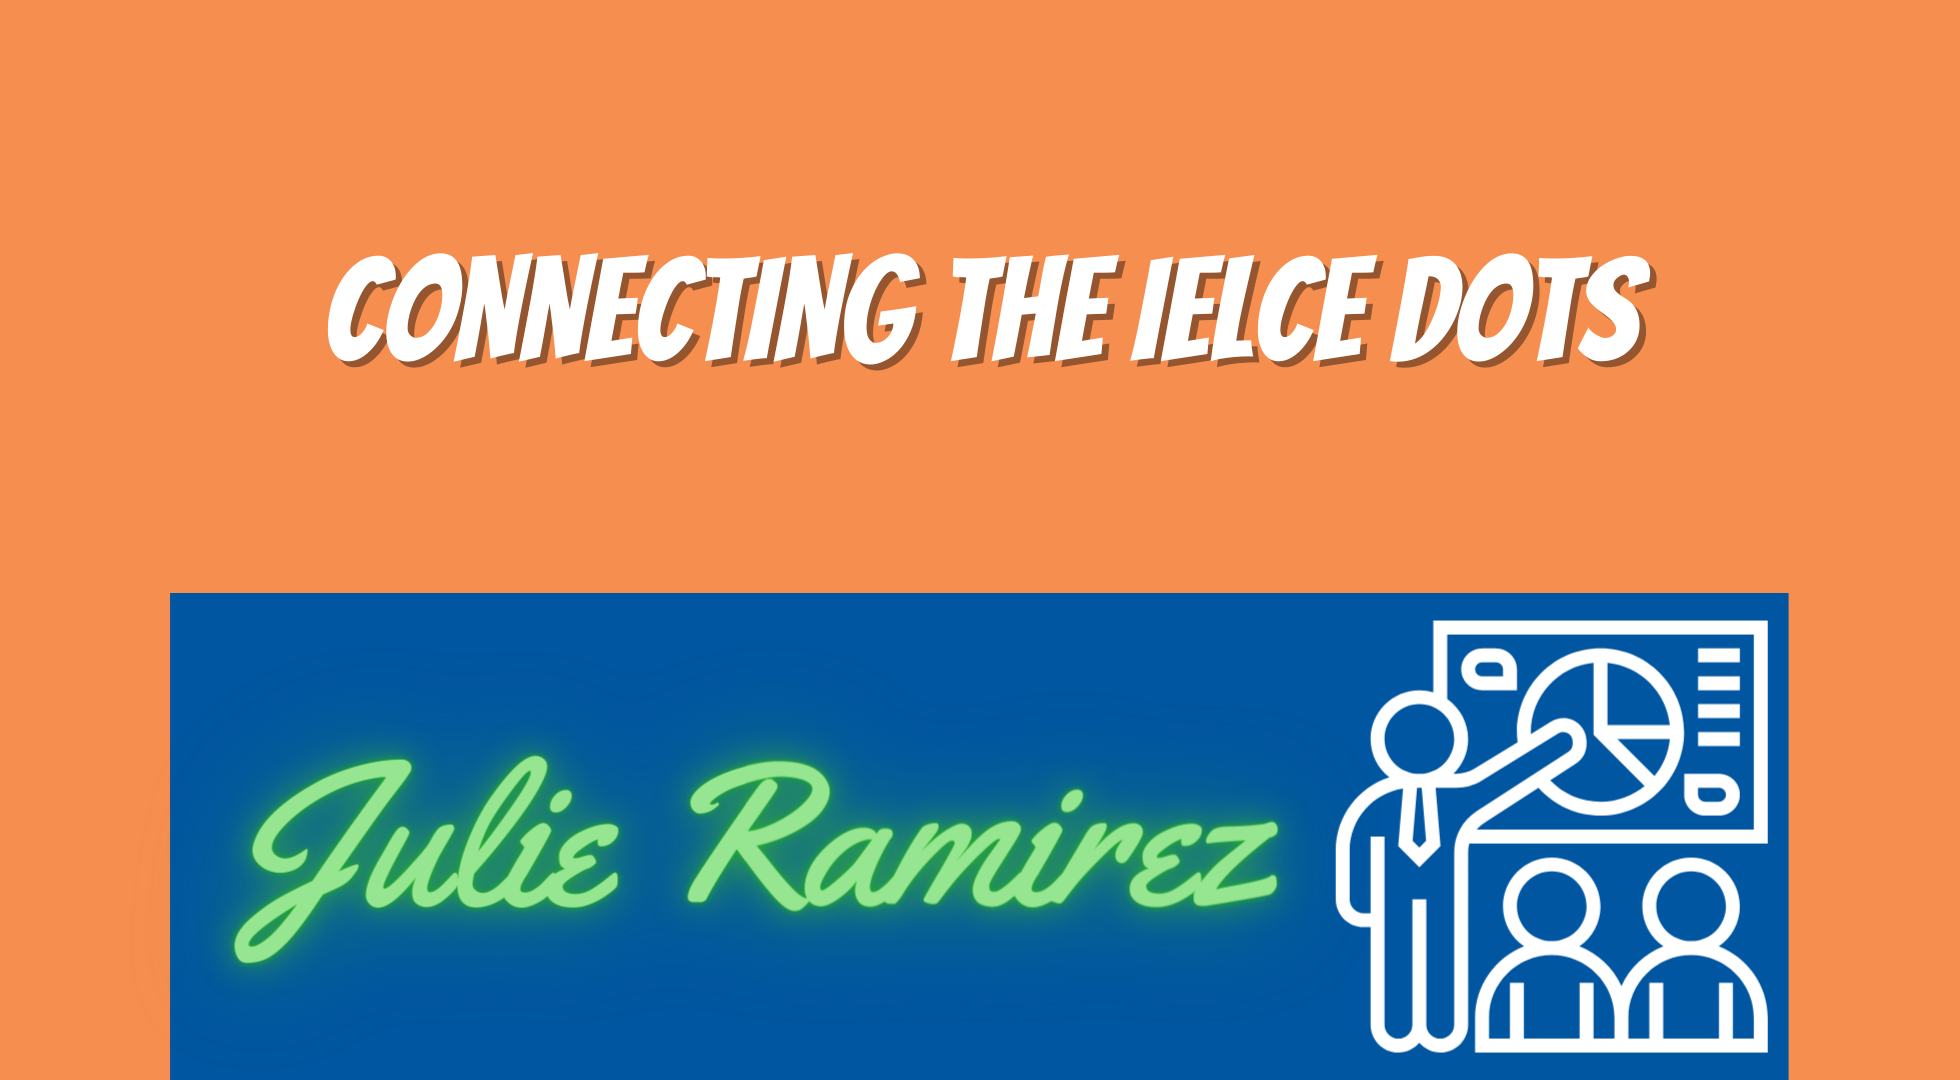 Connecting the IELCE Dots